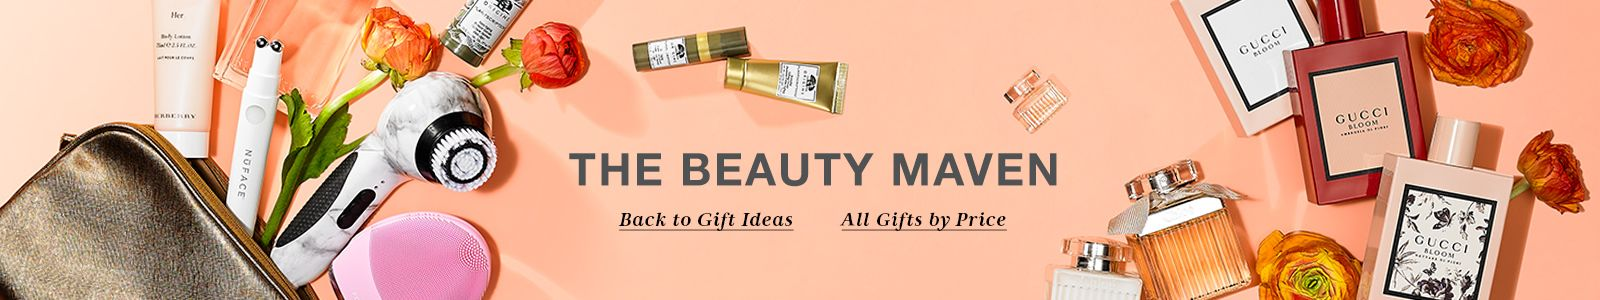 The Beauty Maven, Back to Gift Ideas, All Gifts by Price